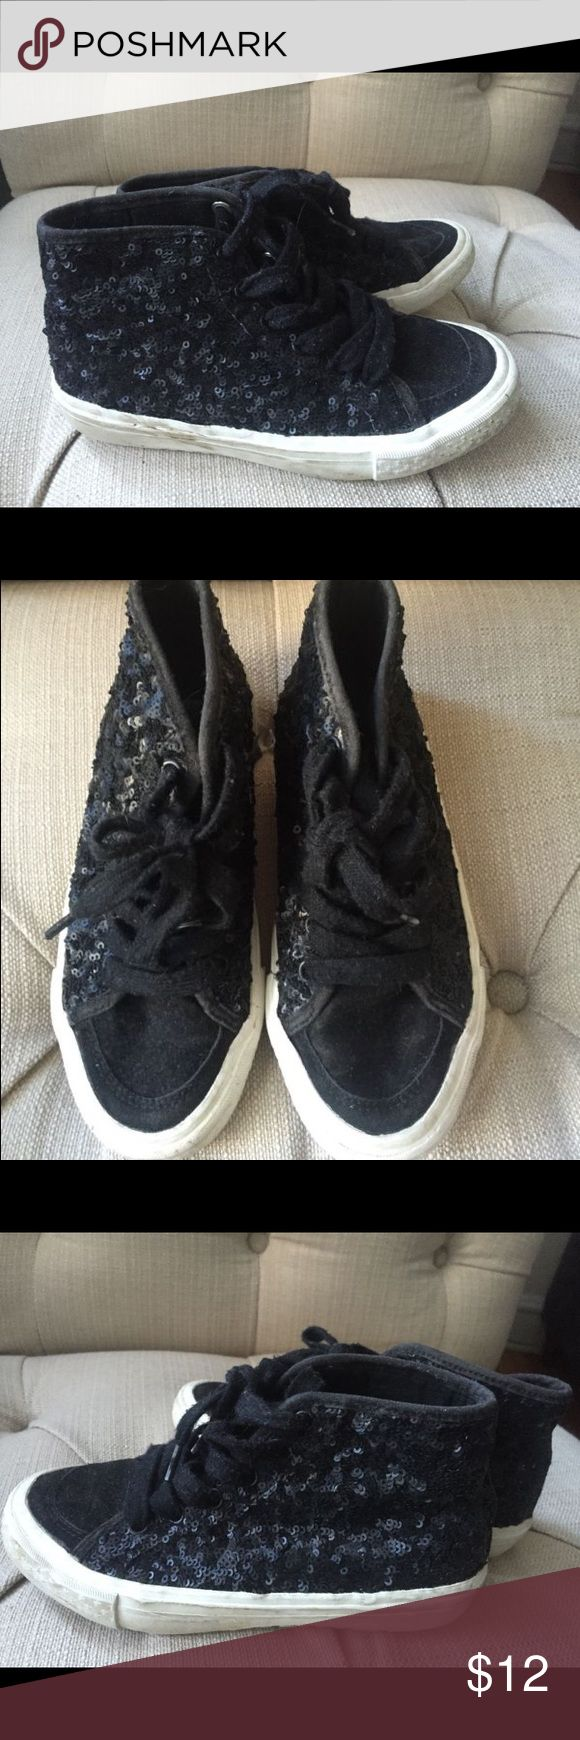 Zara sequin high tops sneakers Zara girl's high top sneakers Europe size 31 or US size Black with sequins. Zara Shoes Sneakers